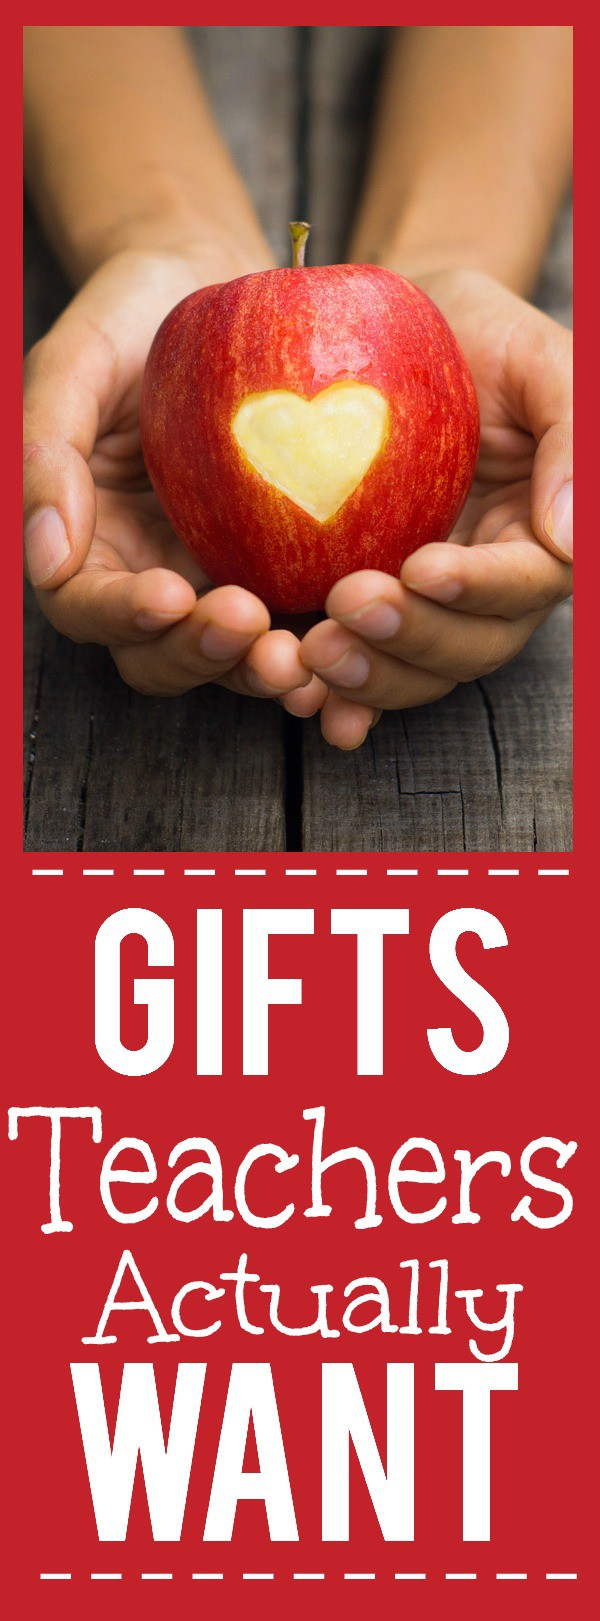 Gift Ideas for Teachers that they'll actually want! Show your child's teacher they are truly valued and appreciated in a practical way that they'll love with these ideas for Gifts Teachers Actually Want. Great for a back to school gift or as an end of the year teacher gift ideas! From a family of teachers!